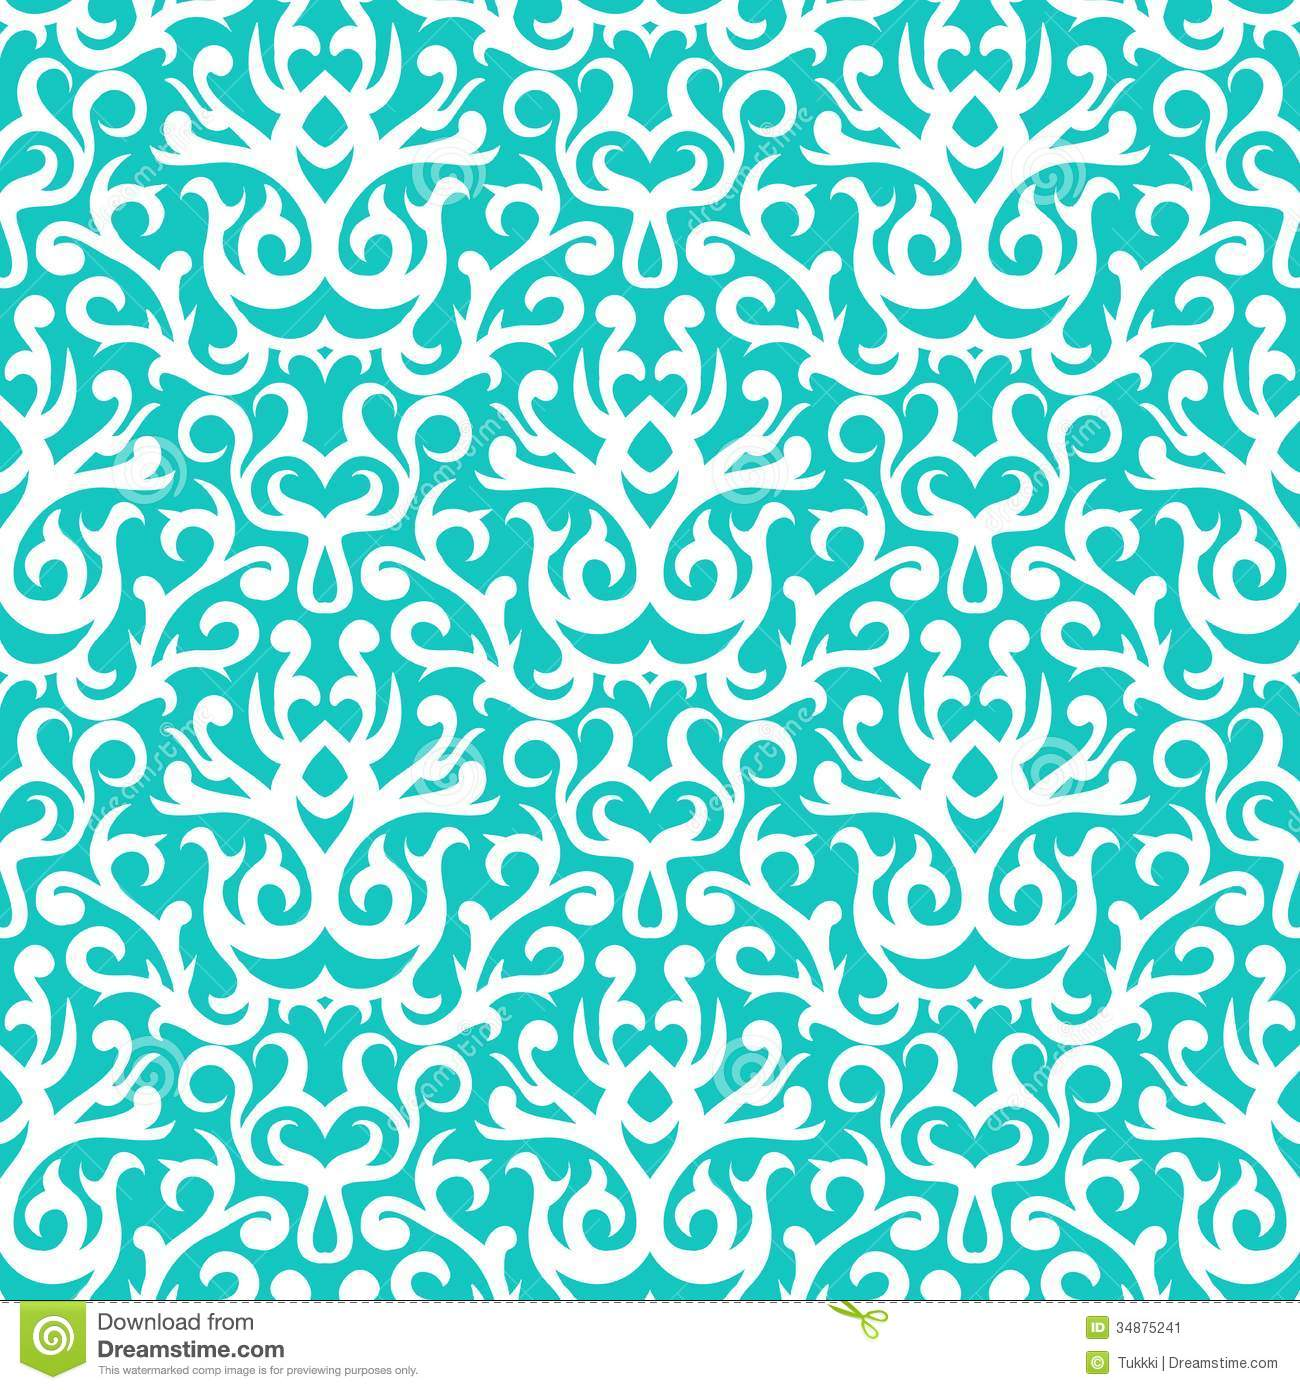 Turquoise and white wallpaper wallpapersafari for Fondo blanco wallpaper